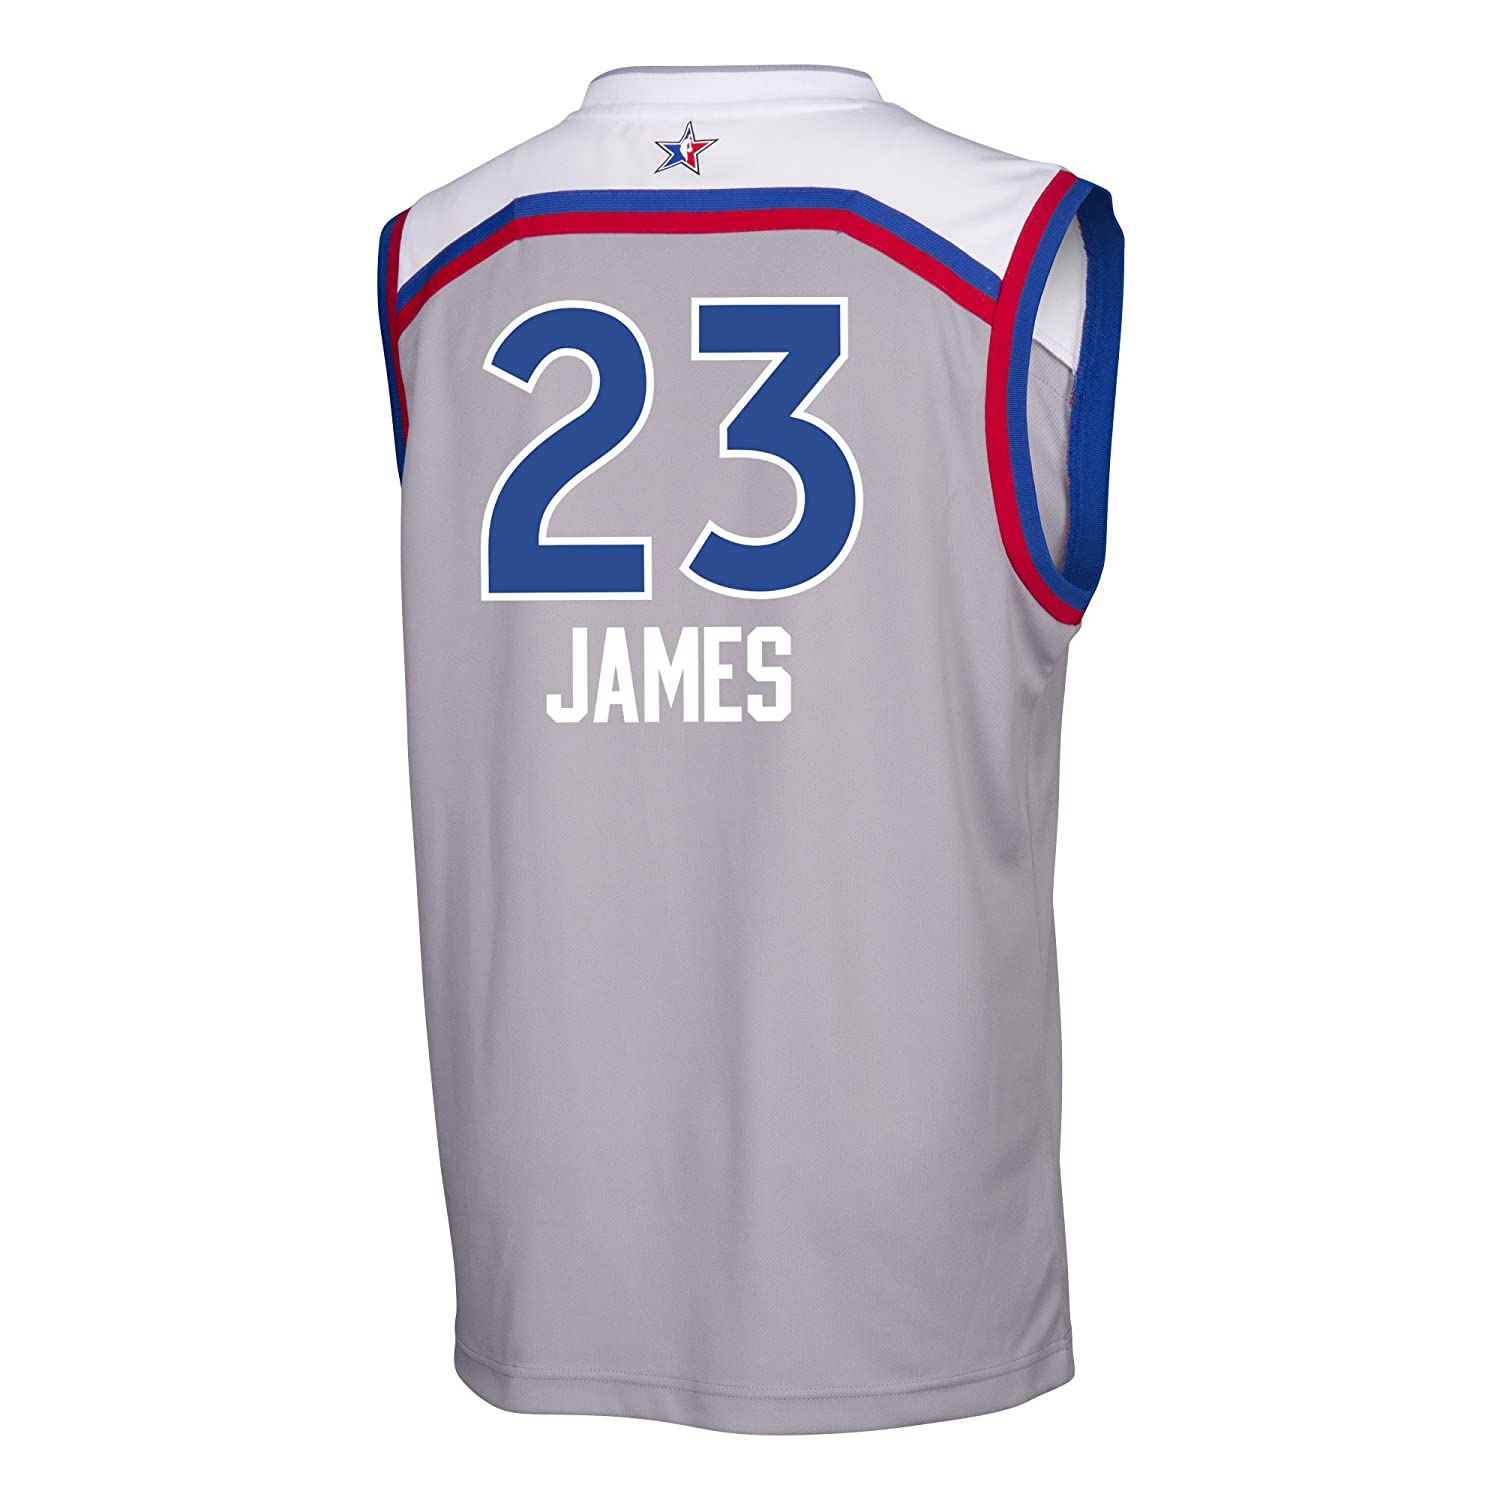 Cavaliers NBA 2017 Lebron James Cleveland adidas All Star